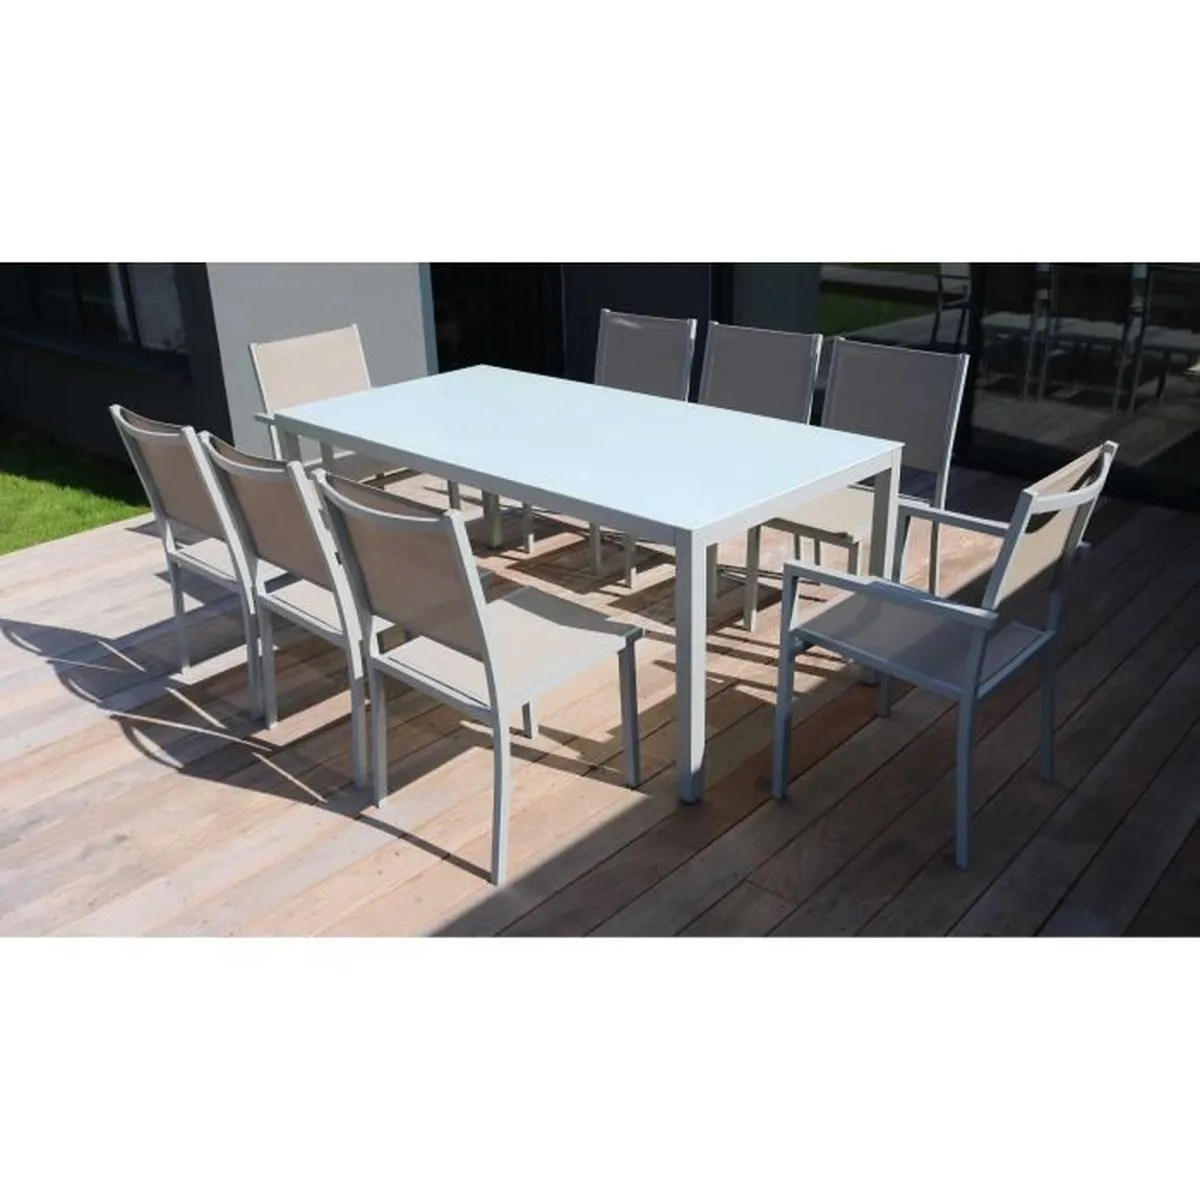 Ensemble Table Et Chaise De Jardin Aluminium Ensemble Table Et Chaise De Jardin Aluminium 8 Places Achat